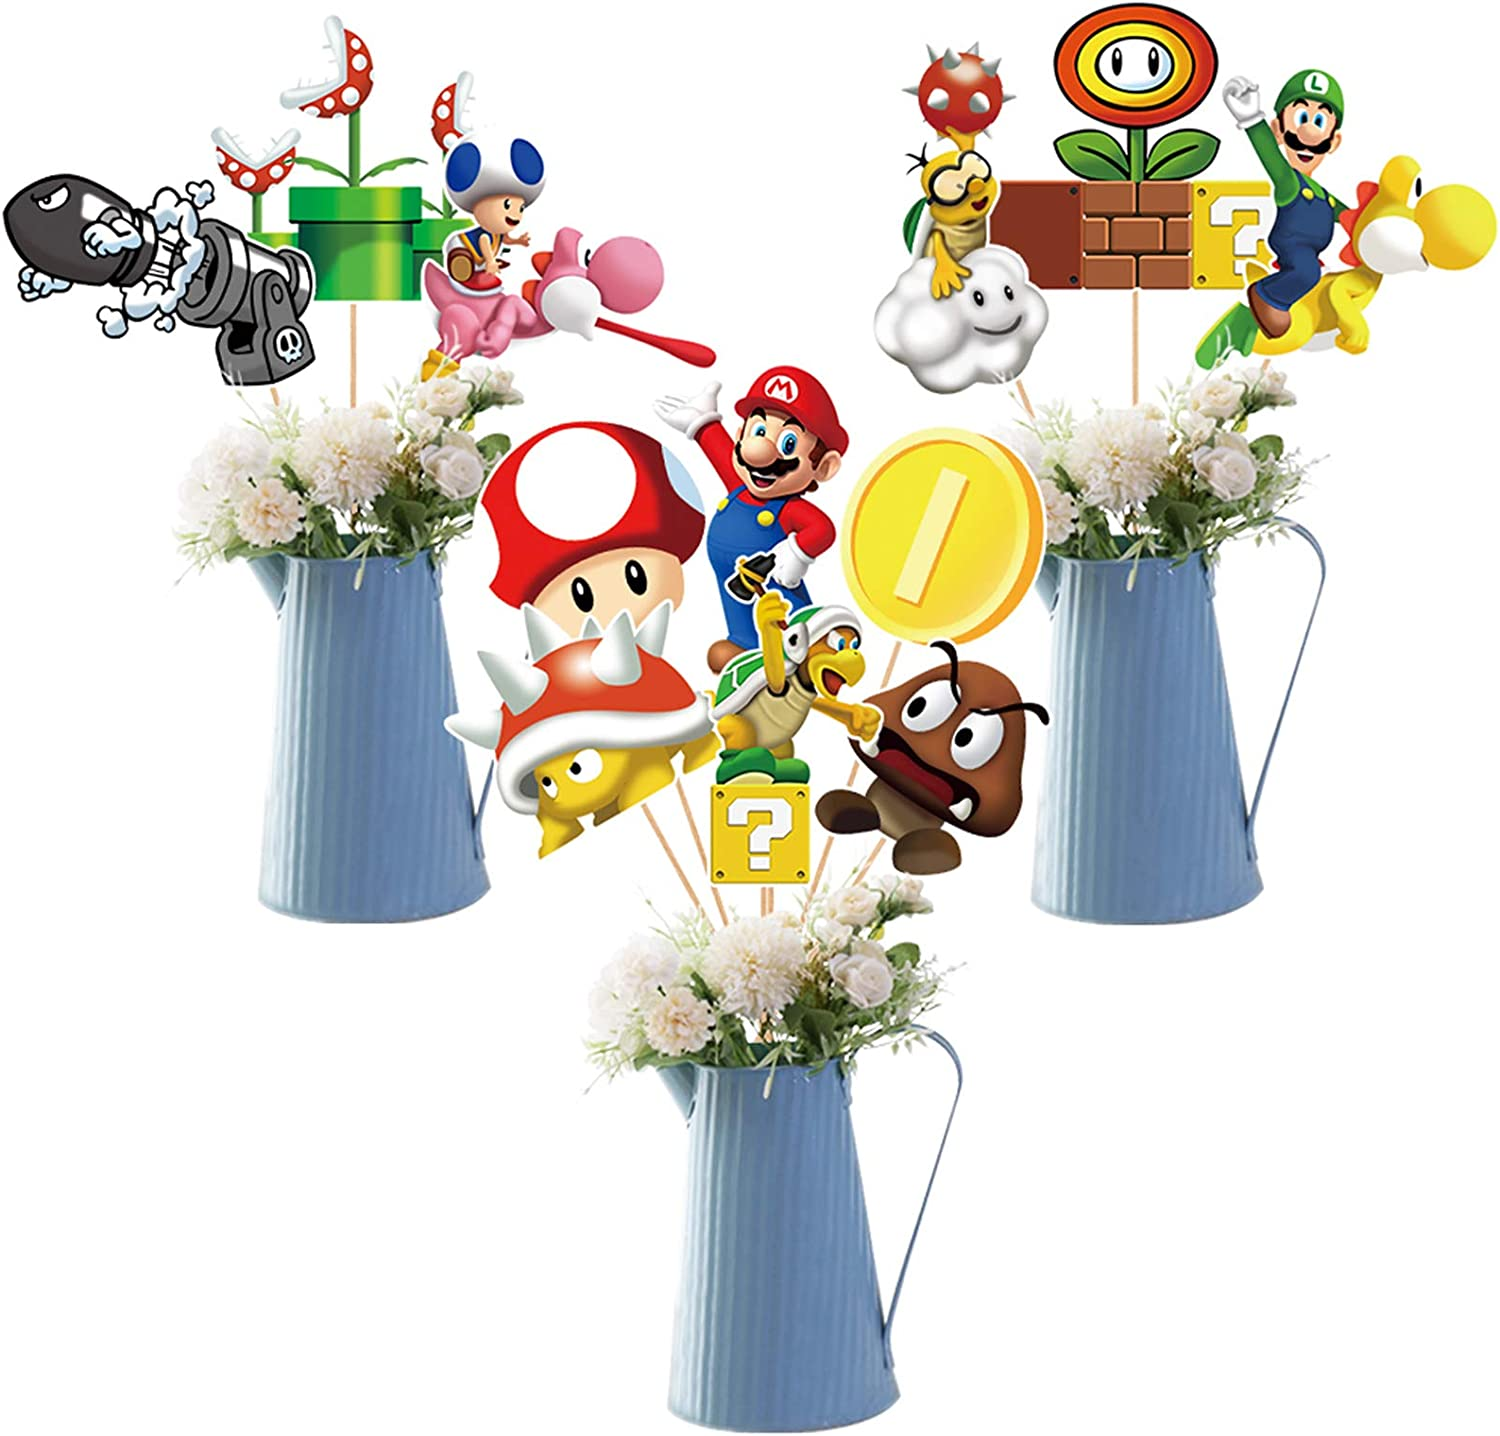 Super Mario Party Table Toppers – Mario Brother Louis, Princess Peach, Yoshi Party Decorations Centerpiece Sticks – For Baby Shower Birthday Party Centerpiece Sticks Table Toppers Photo Booth Props